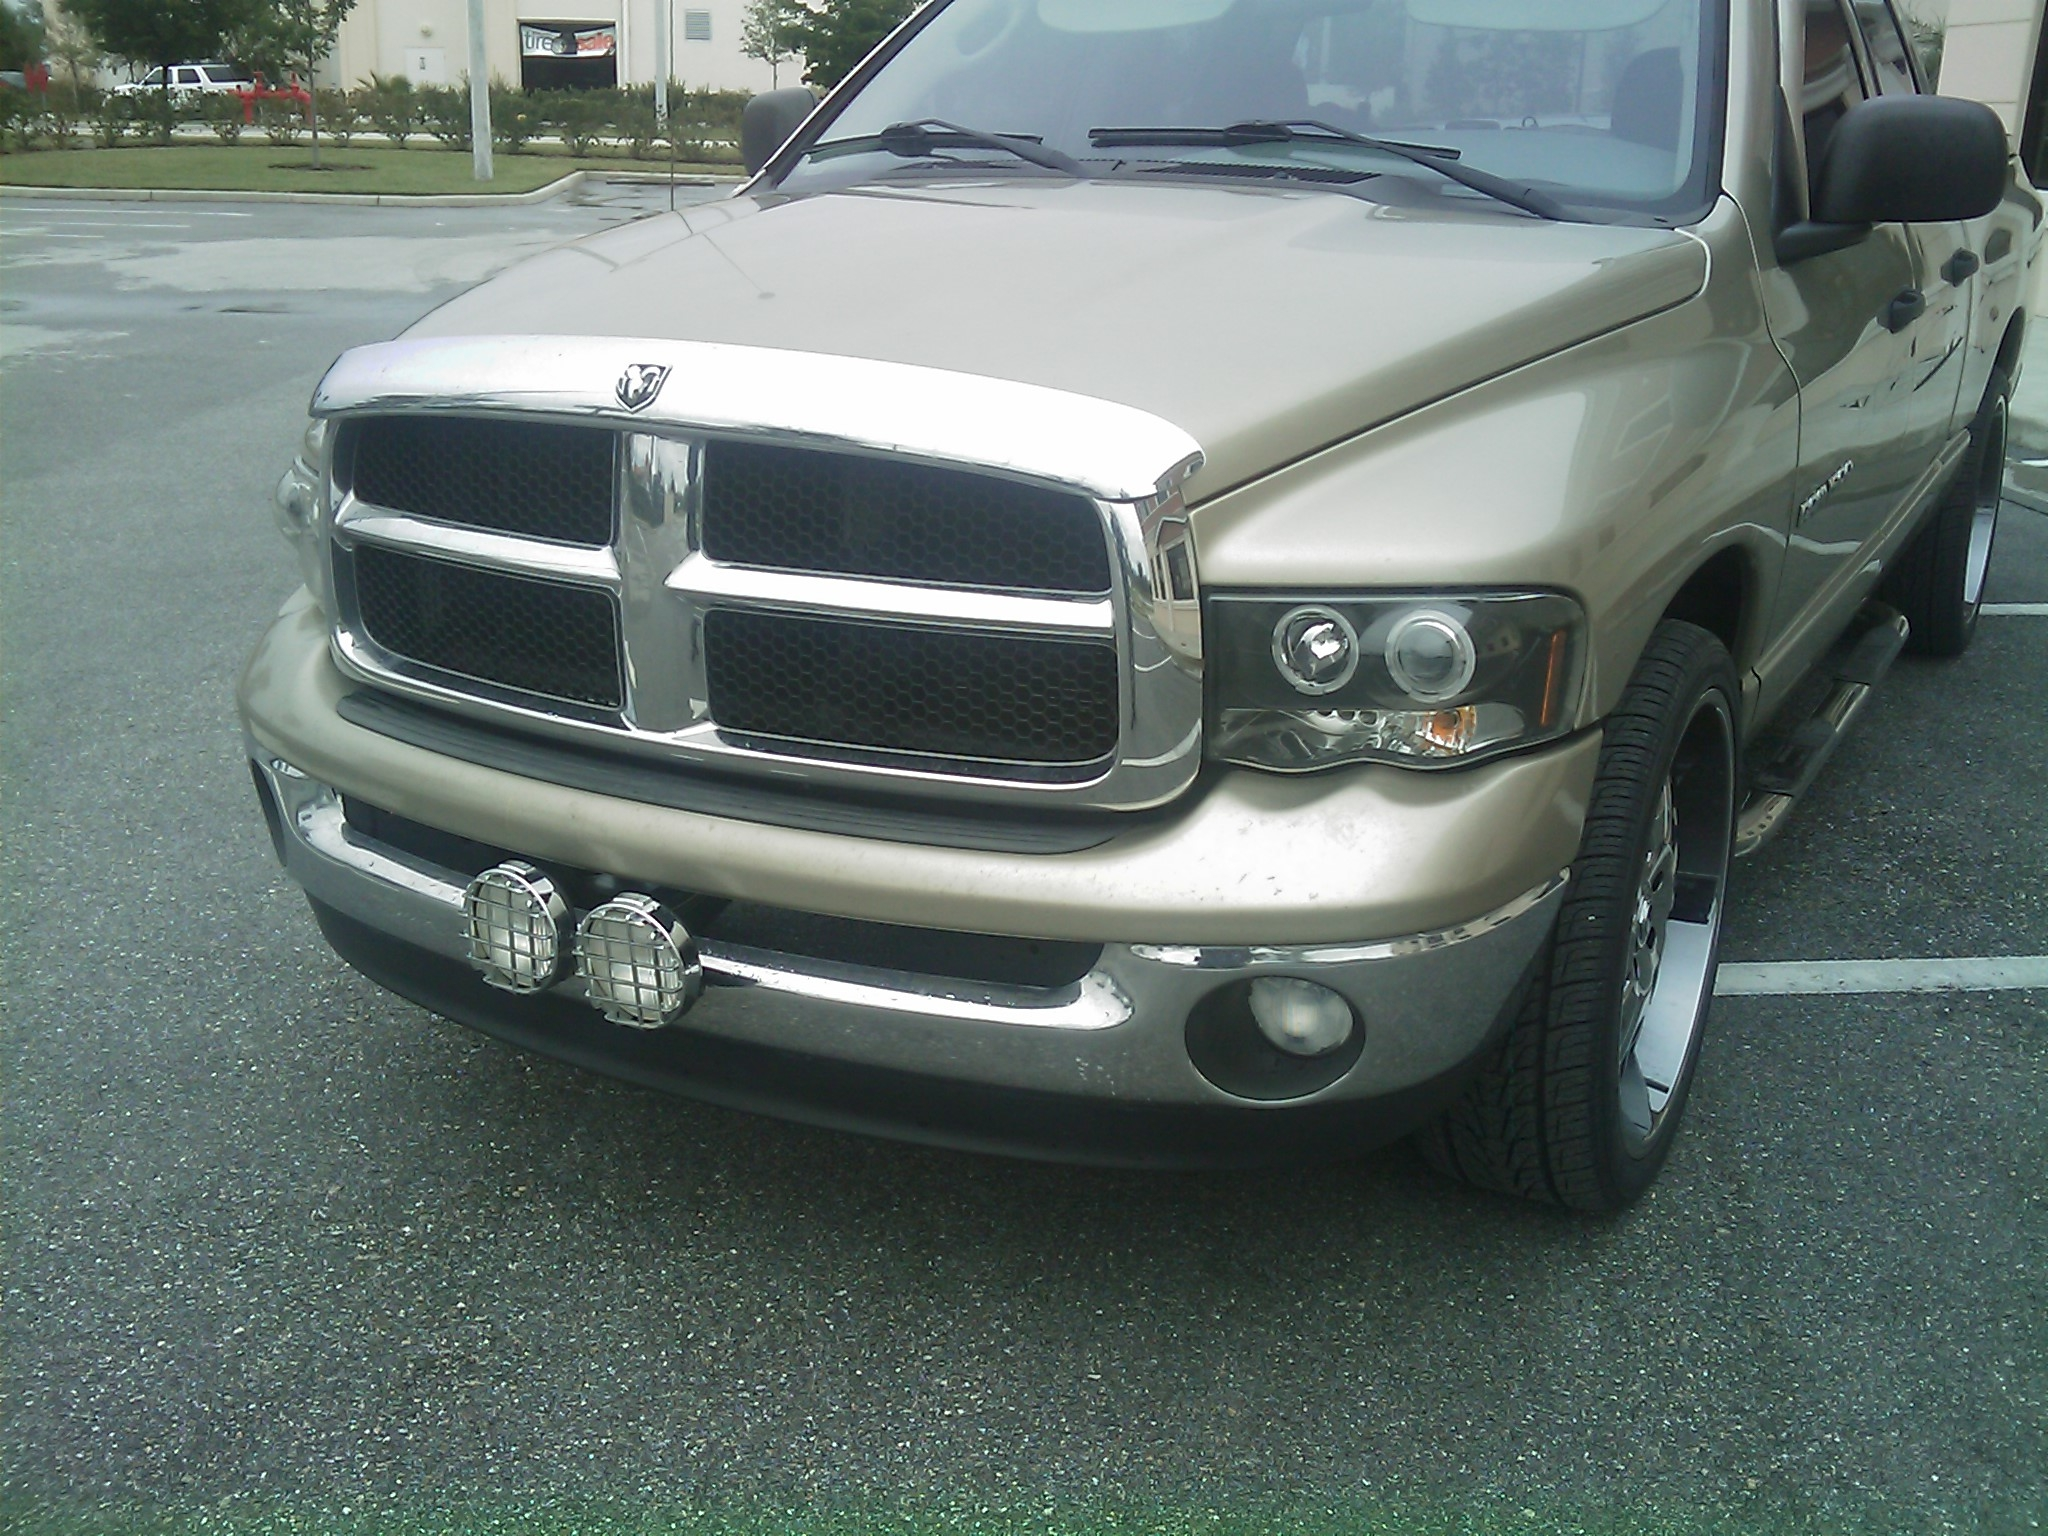 SRT-8_Thunder 2003 Dodge Ram 1500 Quad Cab 11461580